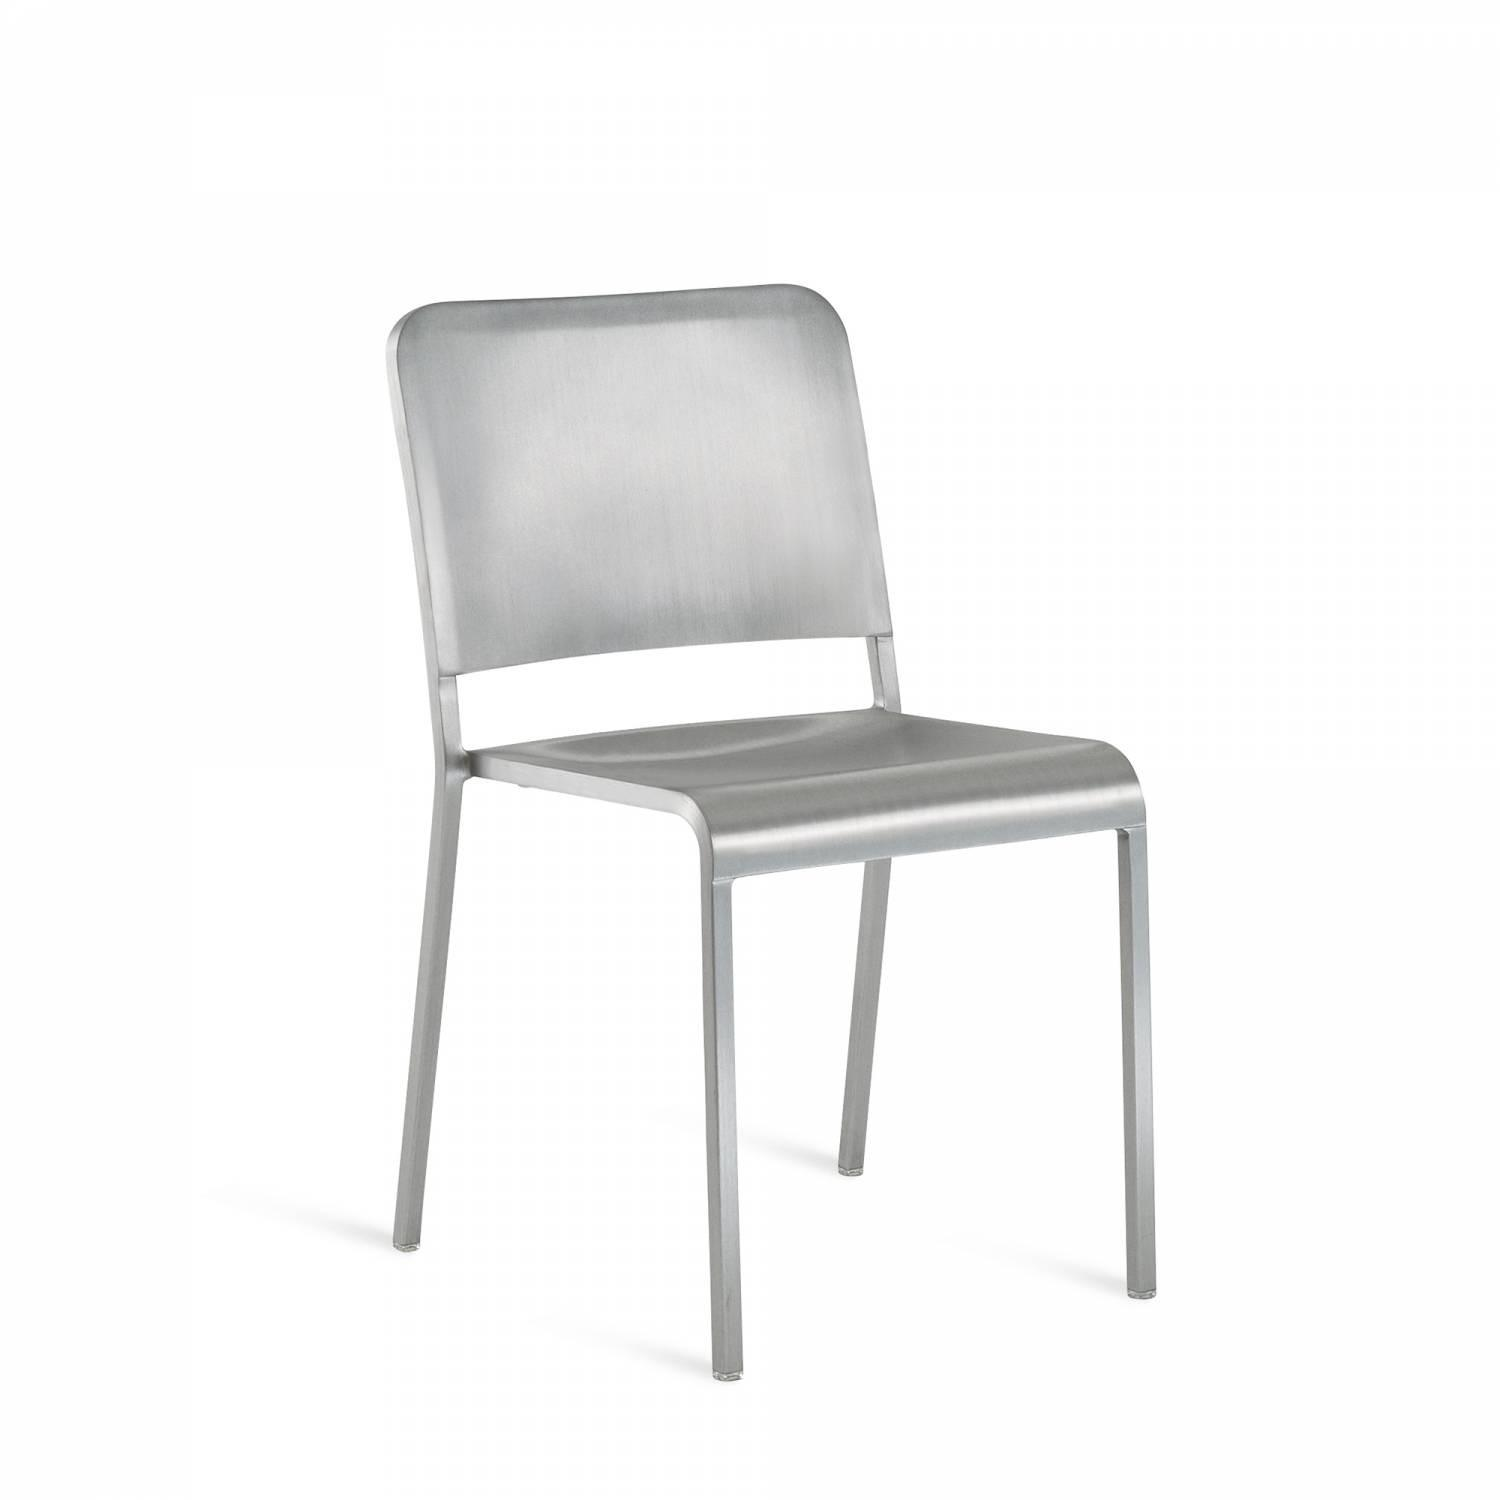 Emeco 20-06 Chairs by Norman Foster - image-0